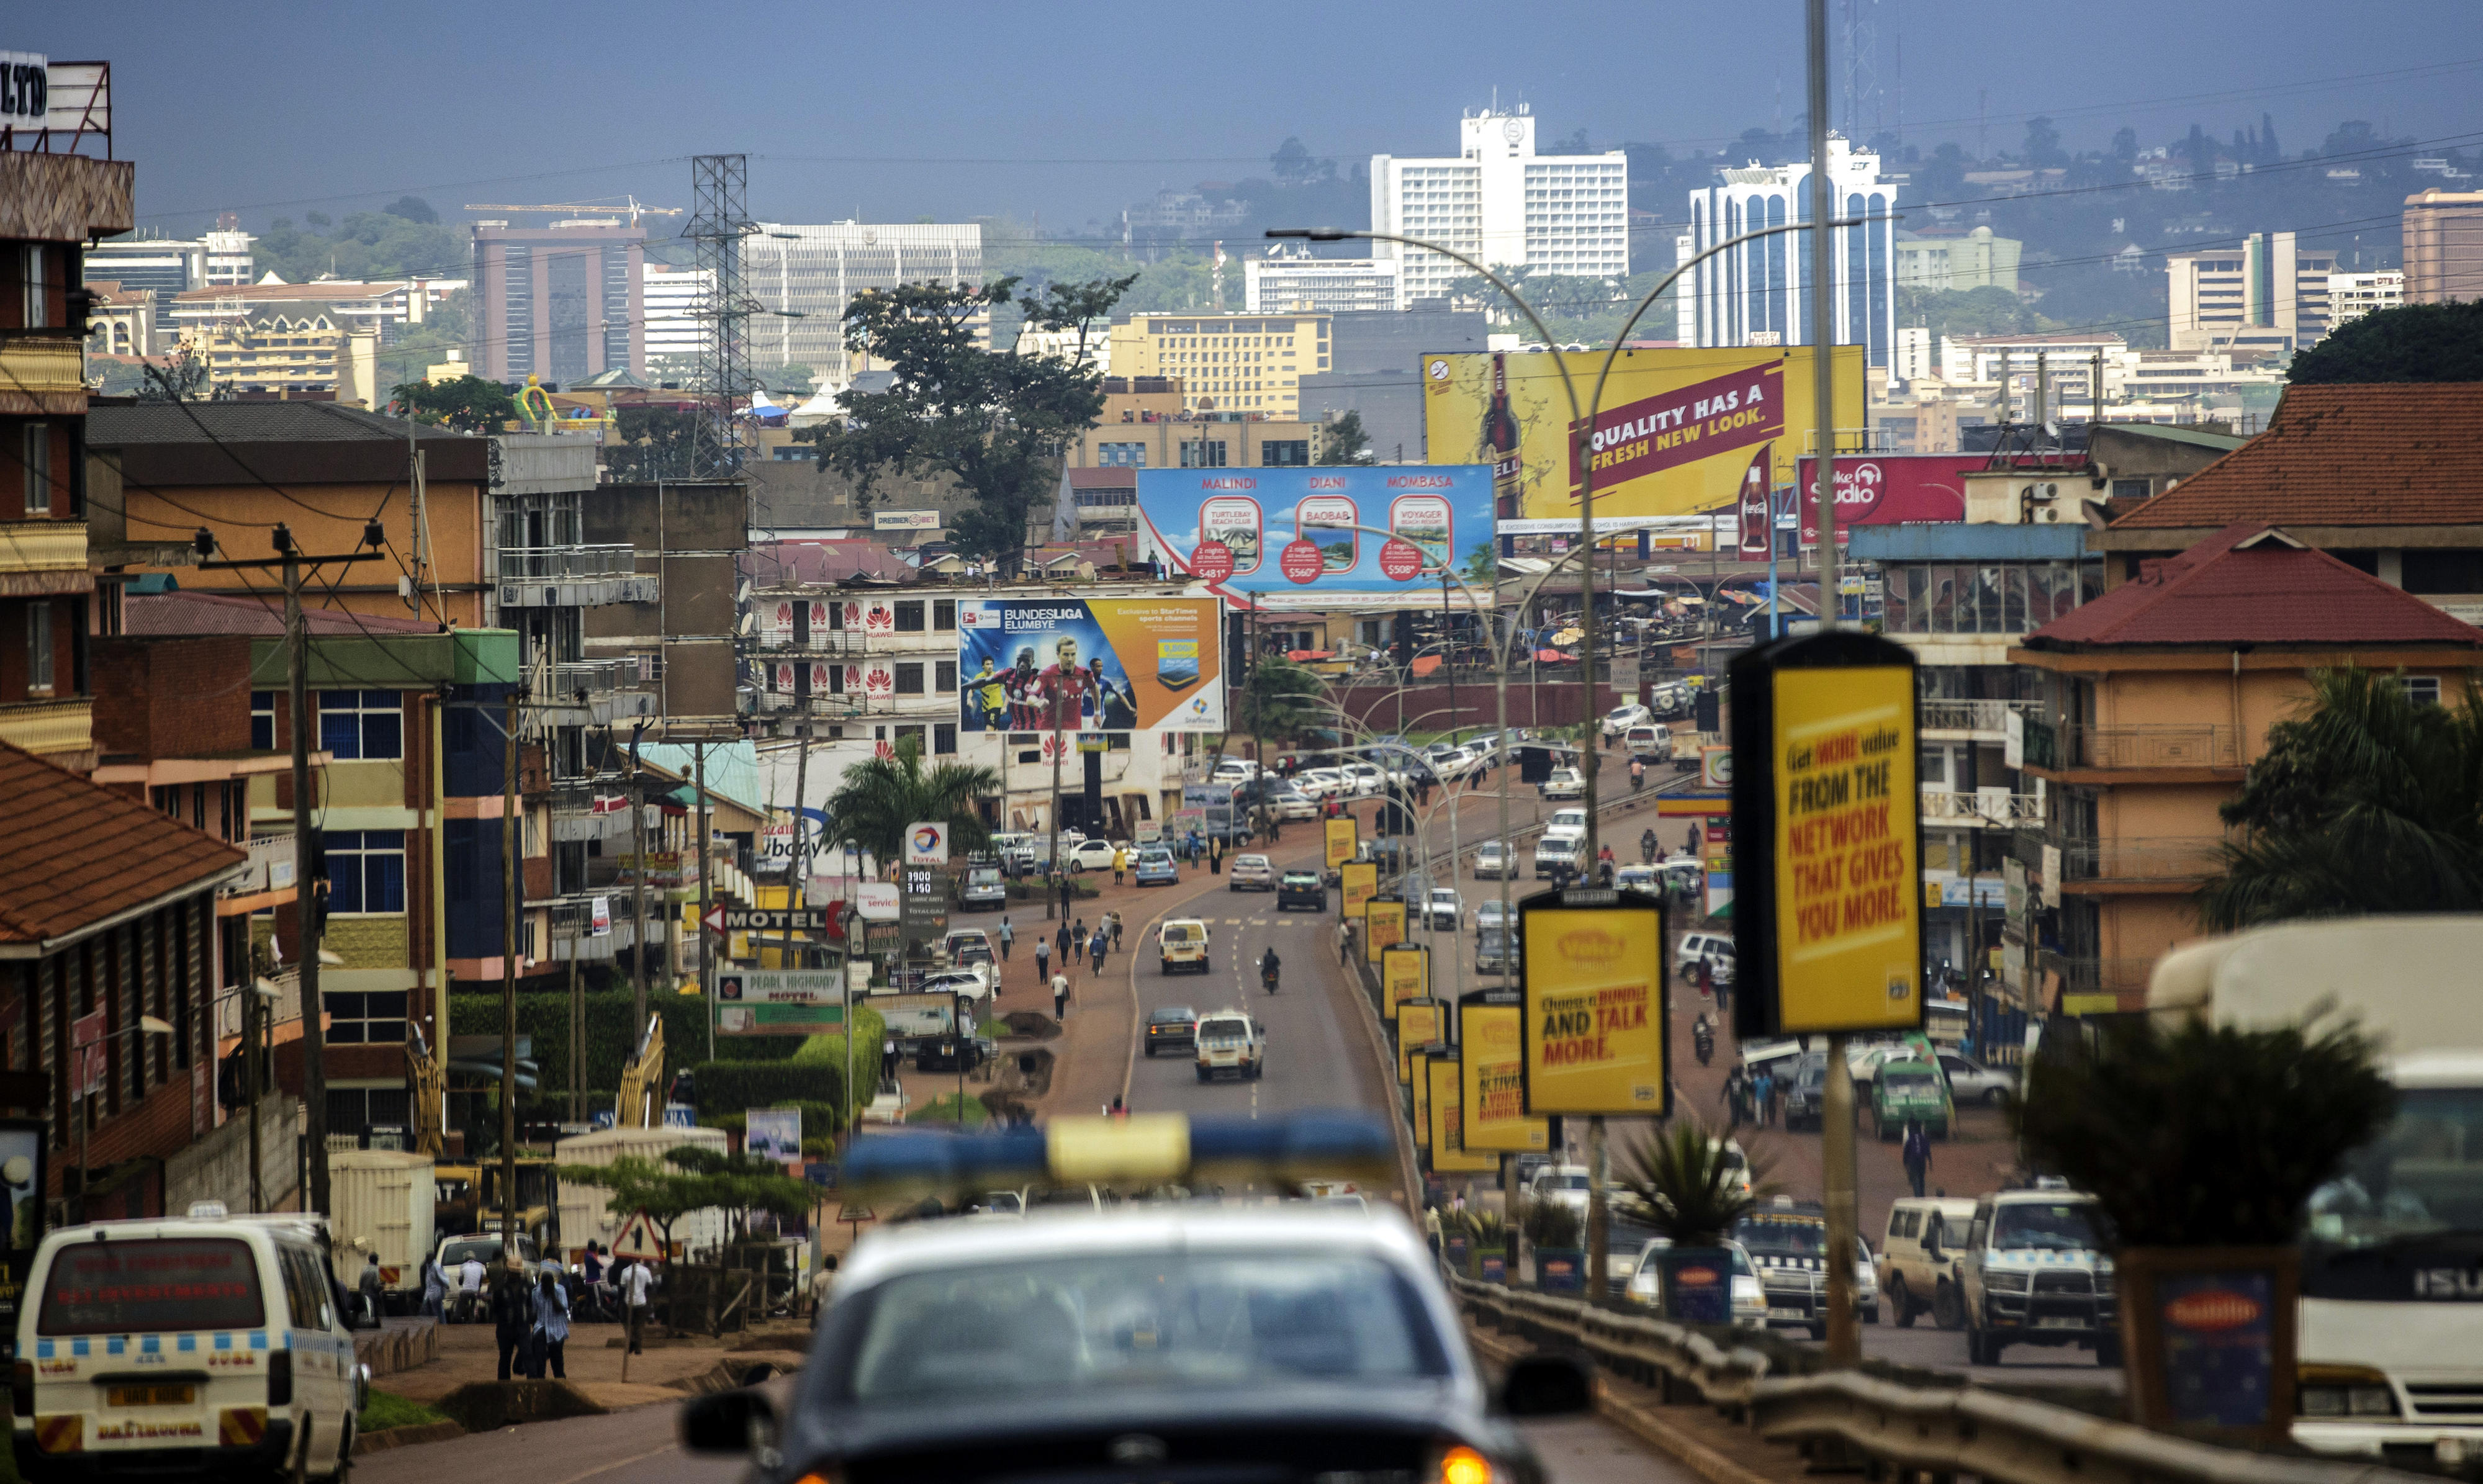 View of Kampala, the capital of Uganda